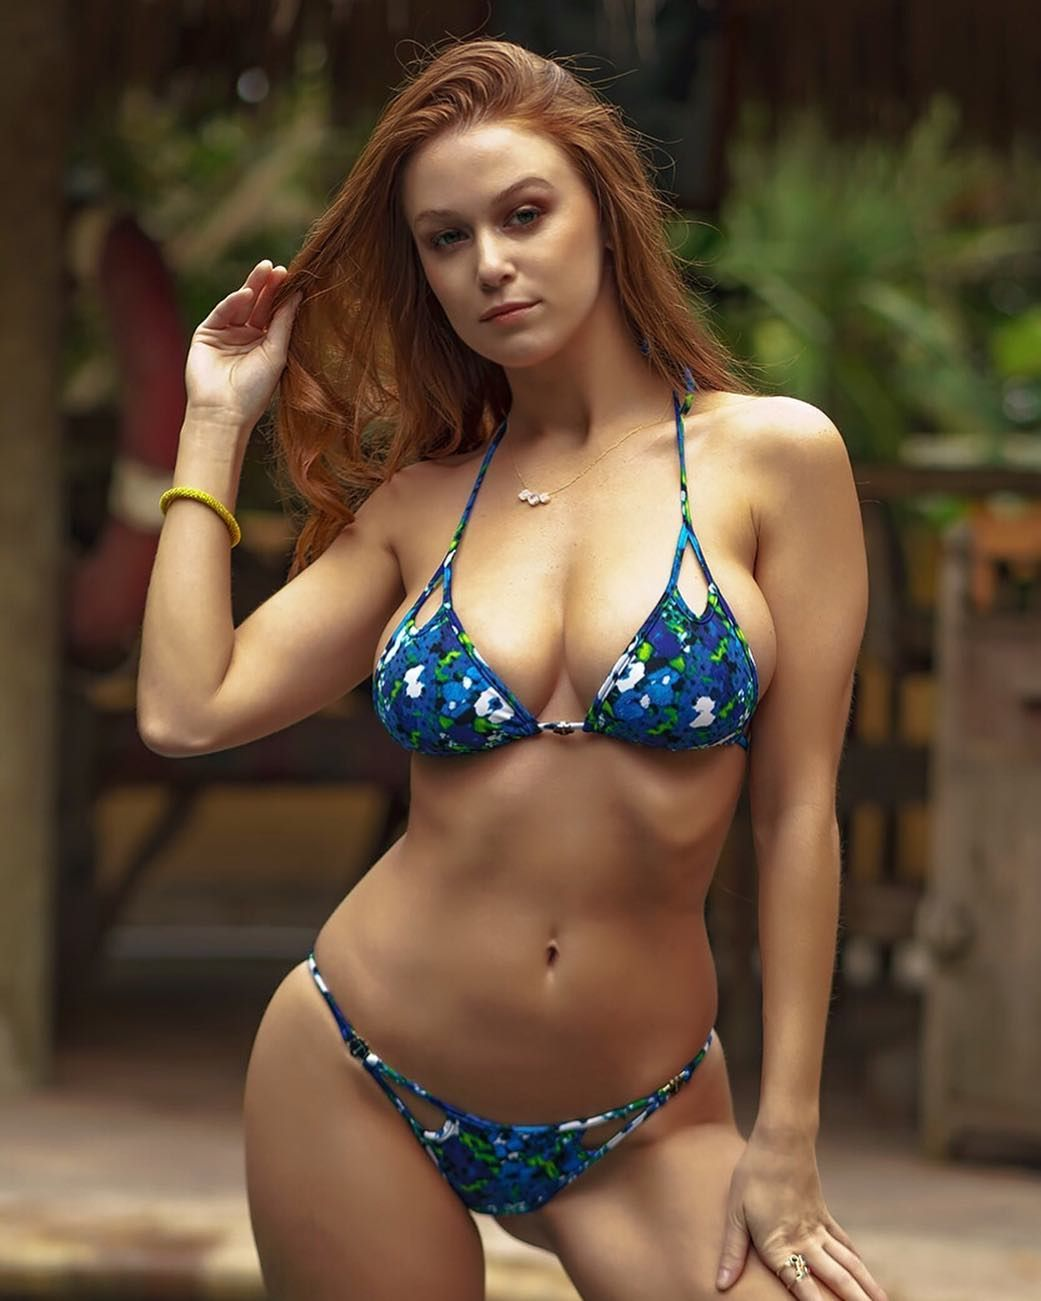 Youtube Leanna Decker nude (38 foto and video), Topless, Hot, Boobs, butt 2020